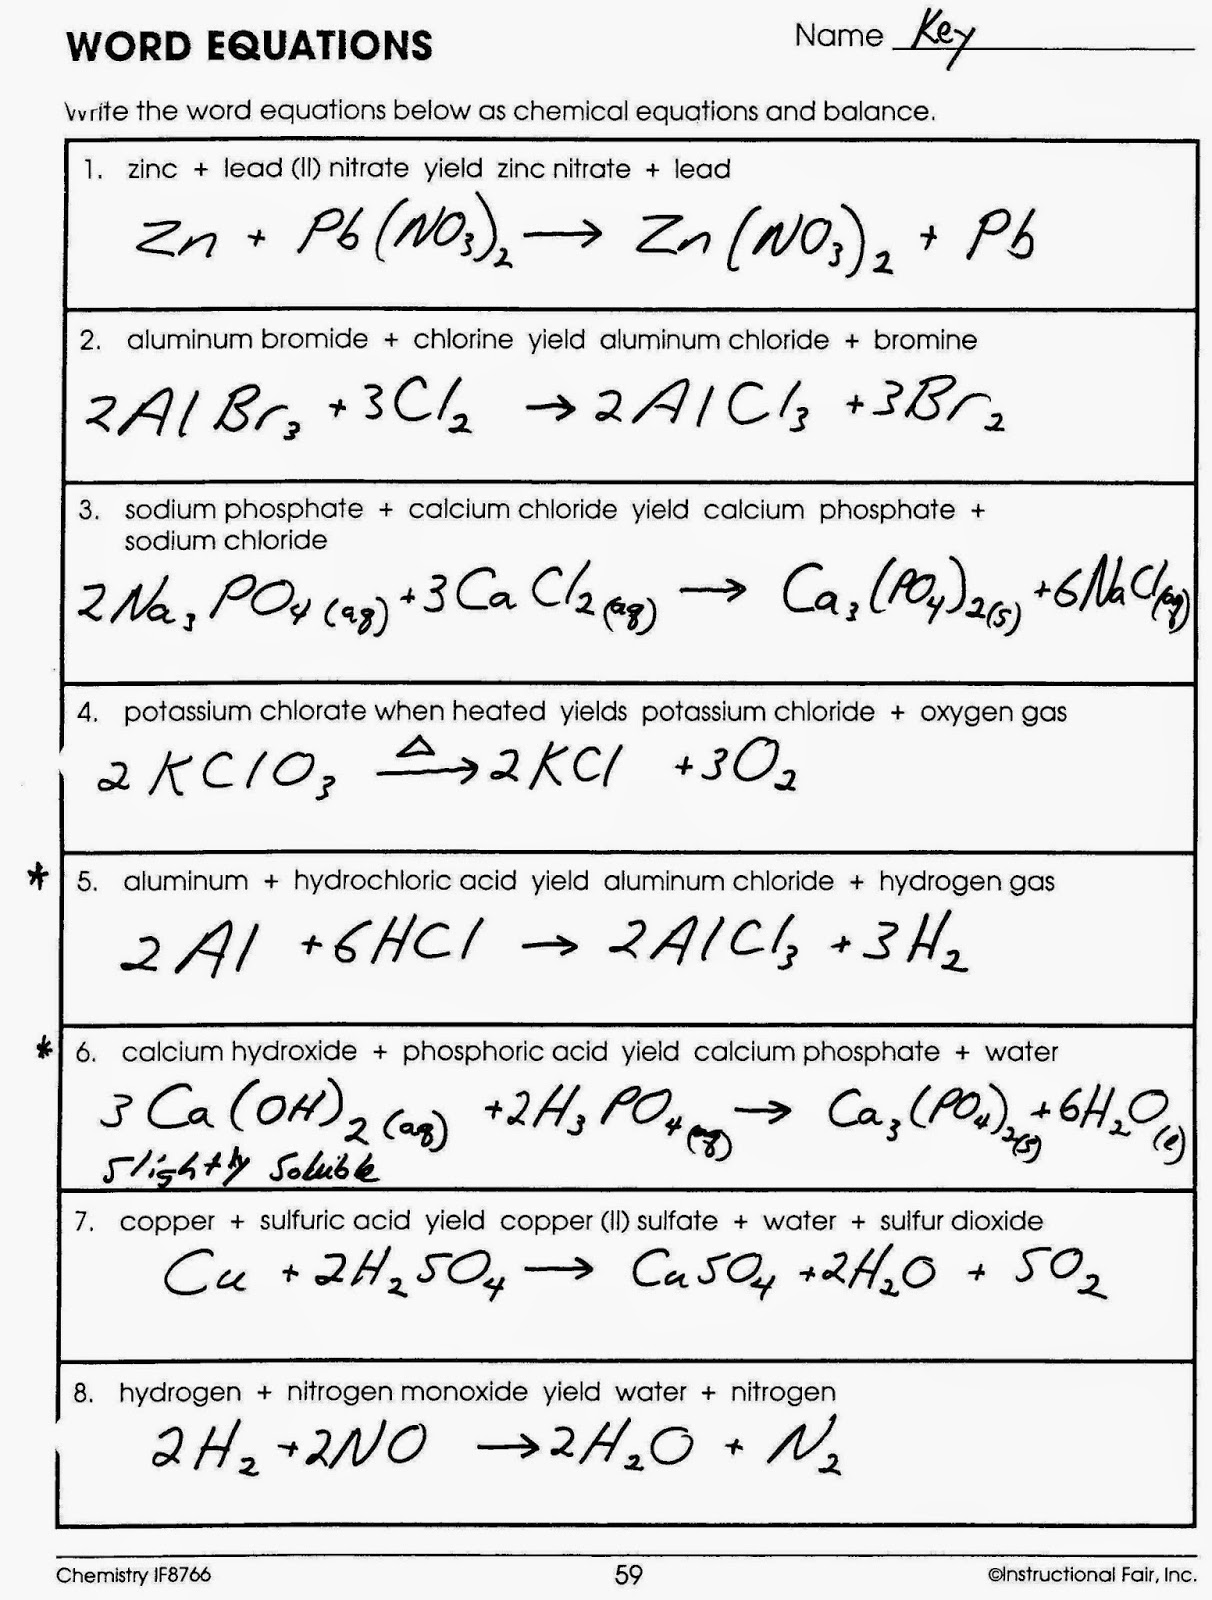 Worksheet Word Equations Worksheet liver and onions are super ii february 2015 for the exam on chemical reactions only time that you will be held accountable states of matter double replacement reactions